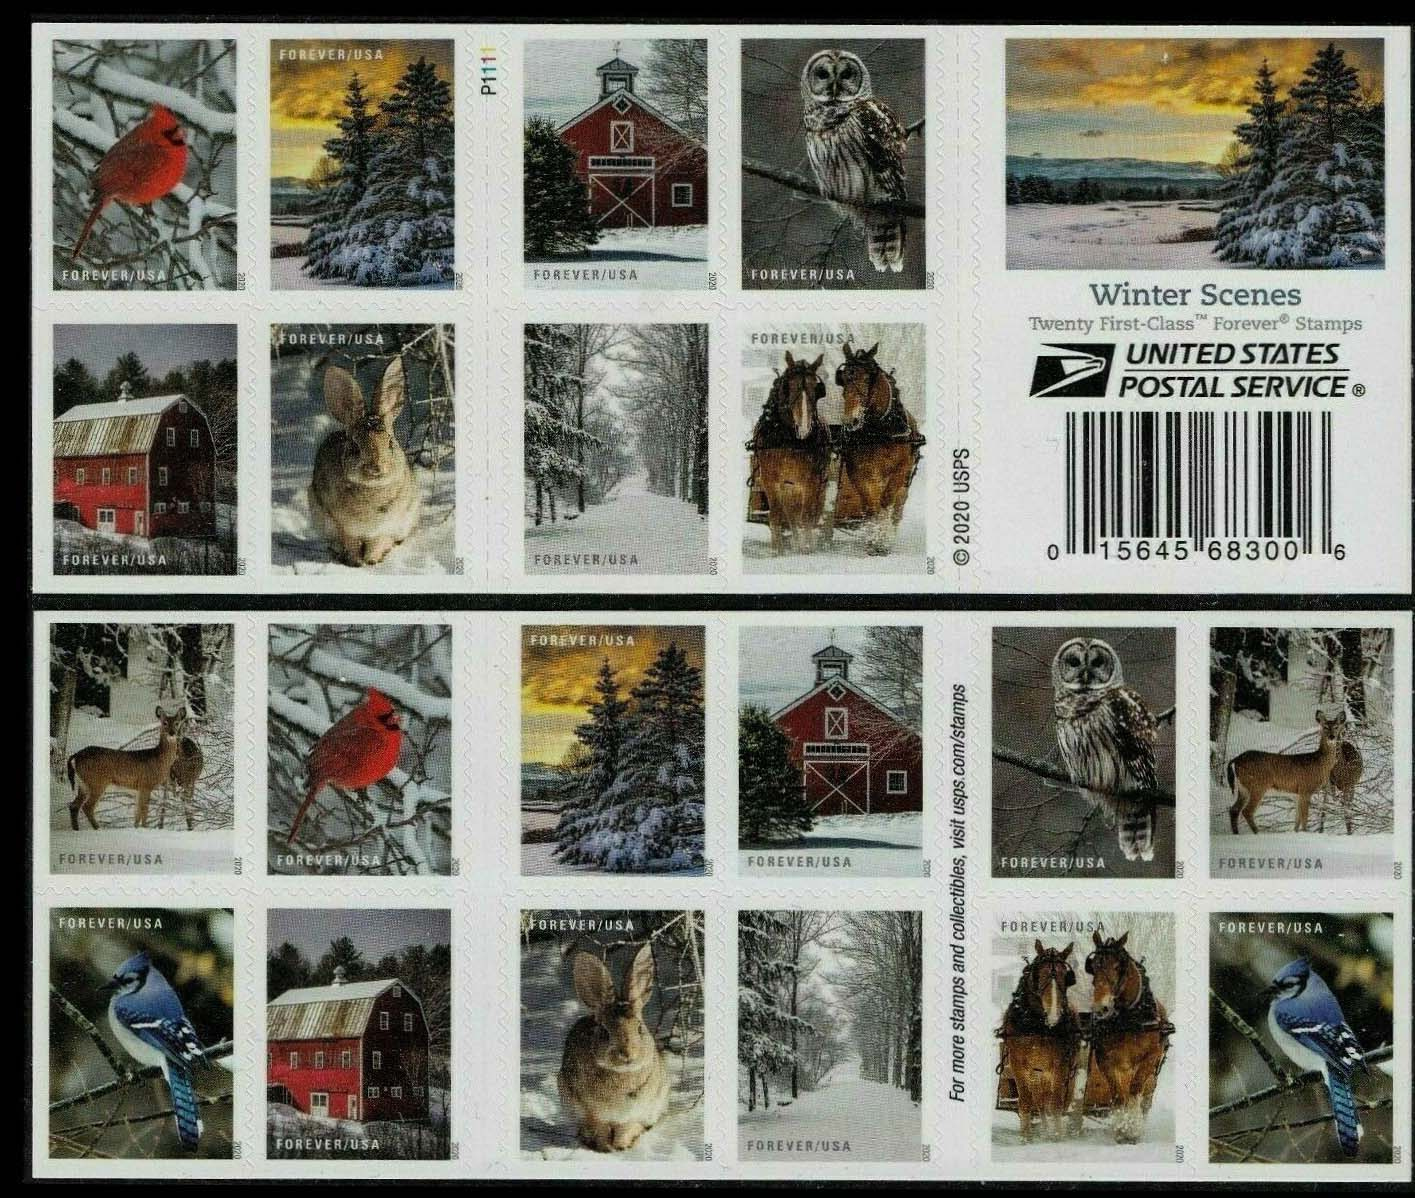 Scott #5531-5540, Double sided Booklet Pane of 20, Winter Scenes